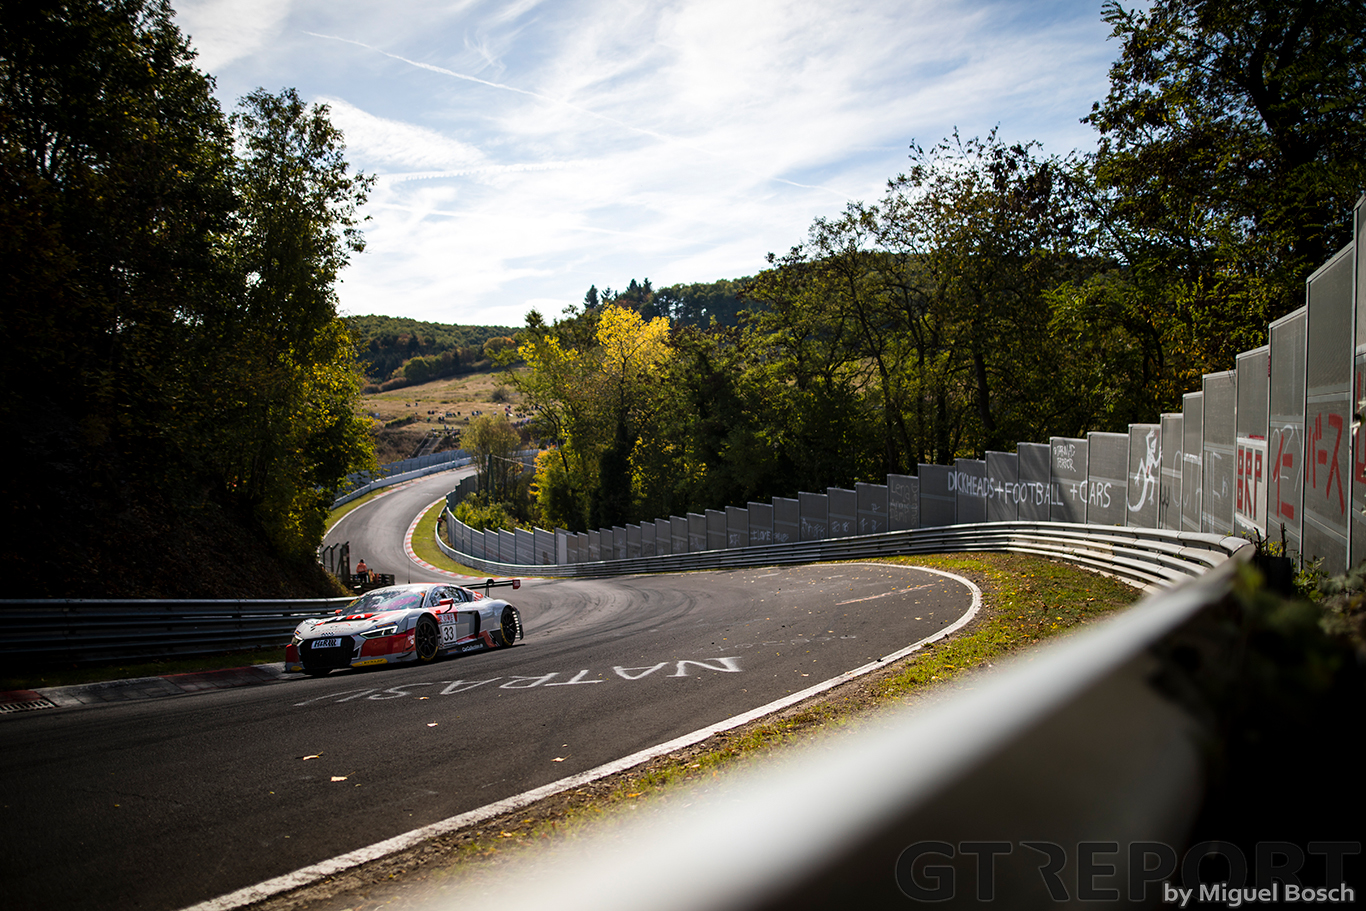 VLN8 gallery: Brighter days, Pt.II